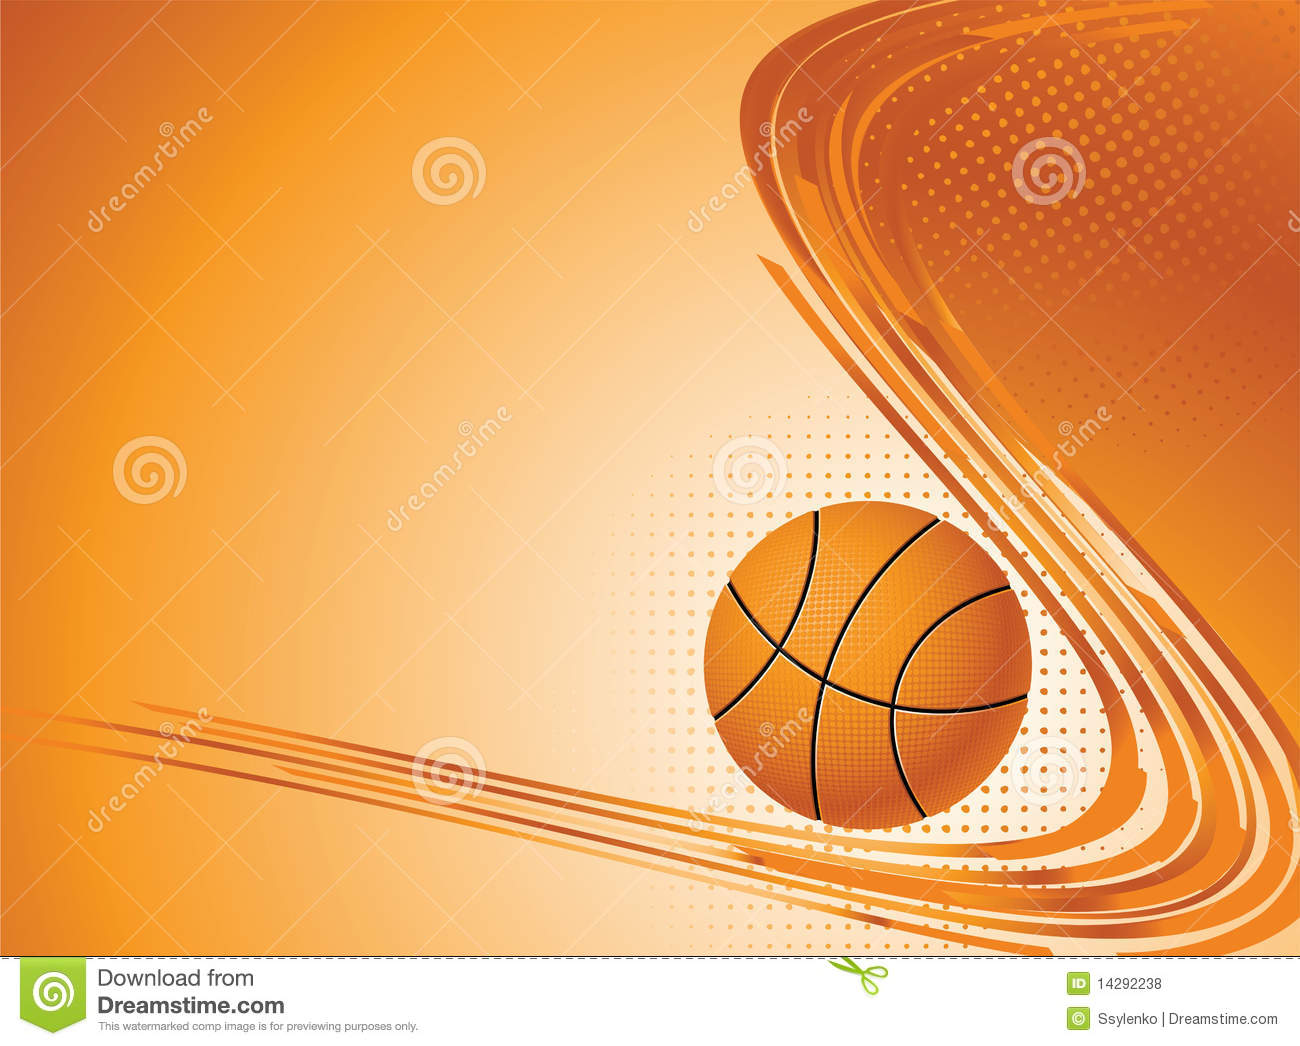 Abstract Sports Background Royalty Free Stock Image: Abstract Sport Background. Royalty Free Stock Photos